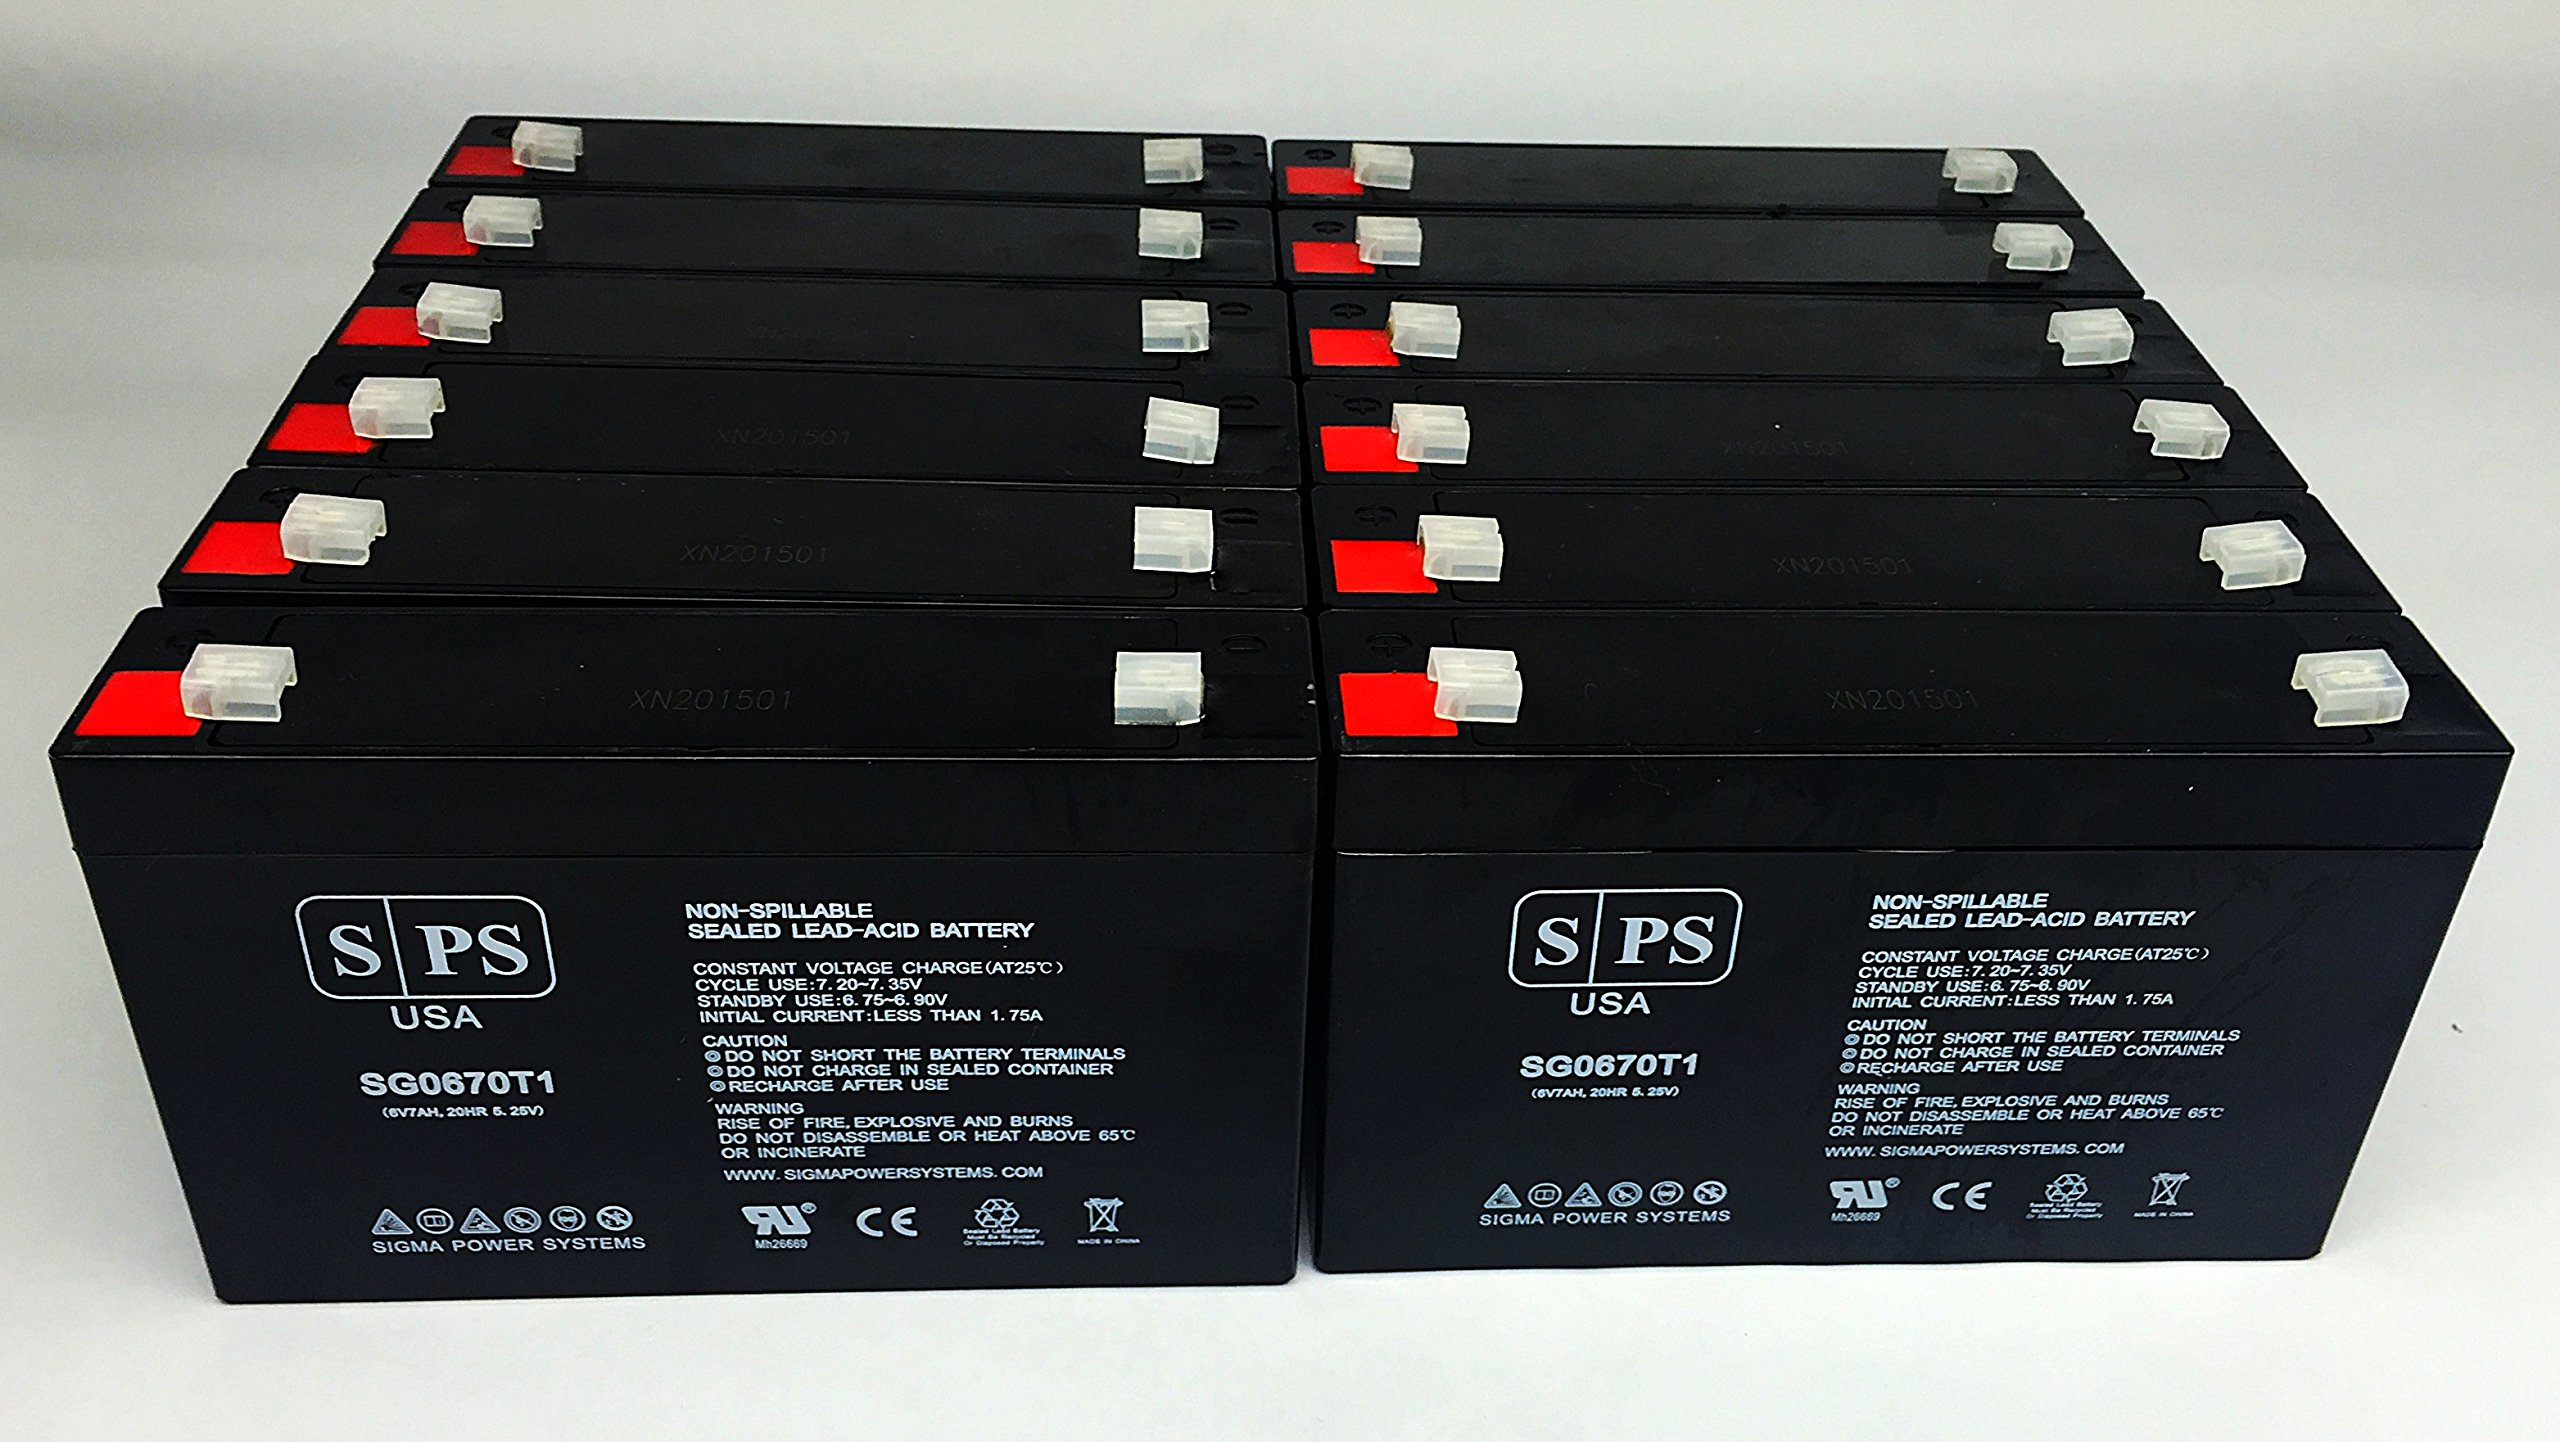 BB HR9-6, HR96 UPS 6V 7Ah Replacement Battery -SPS Brand (12 Pack) by SPS